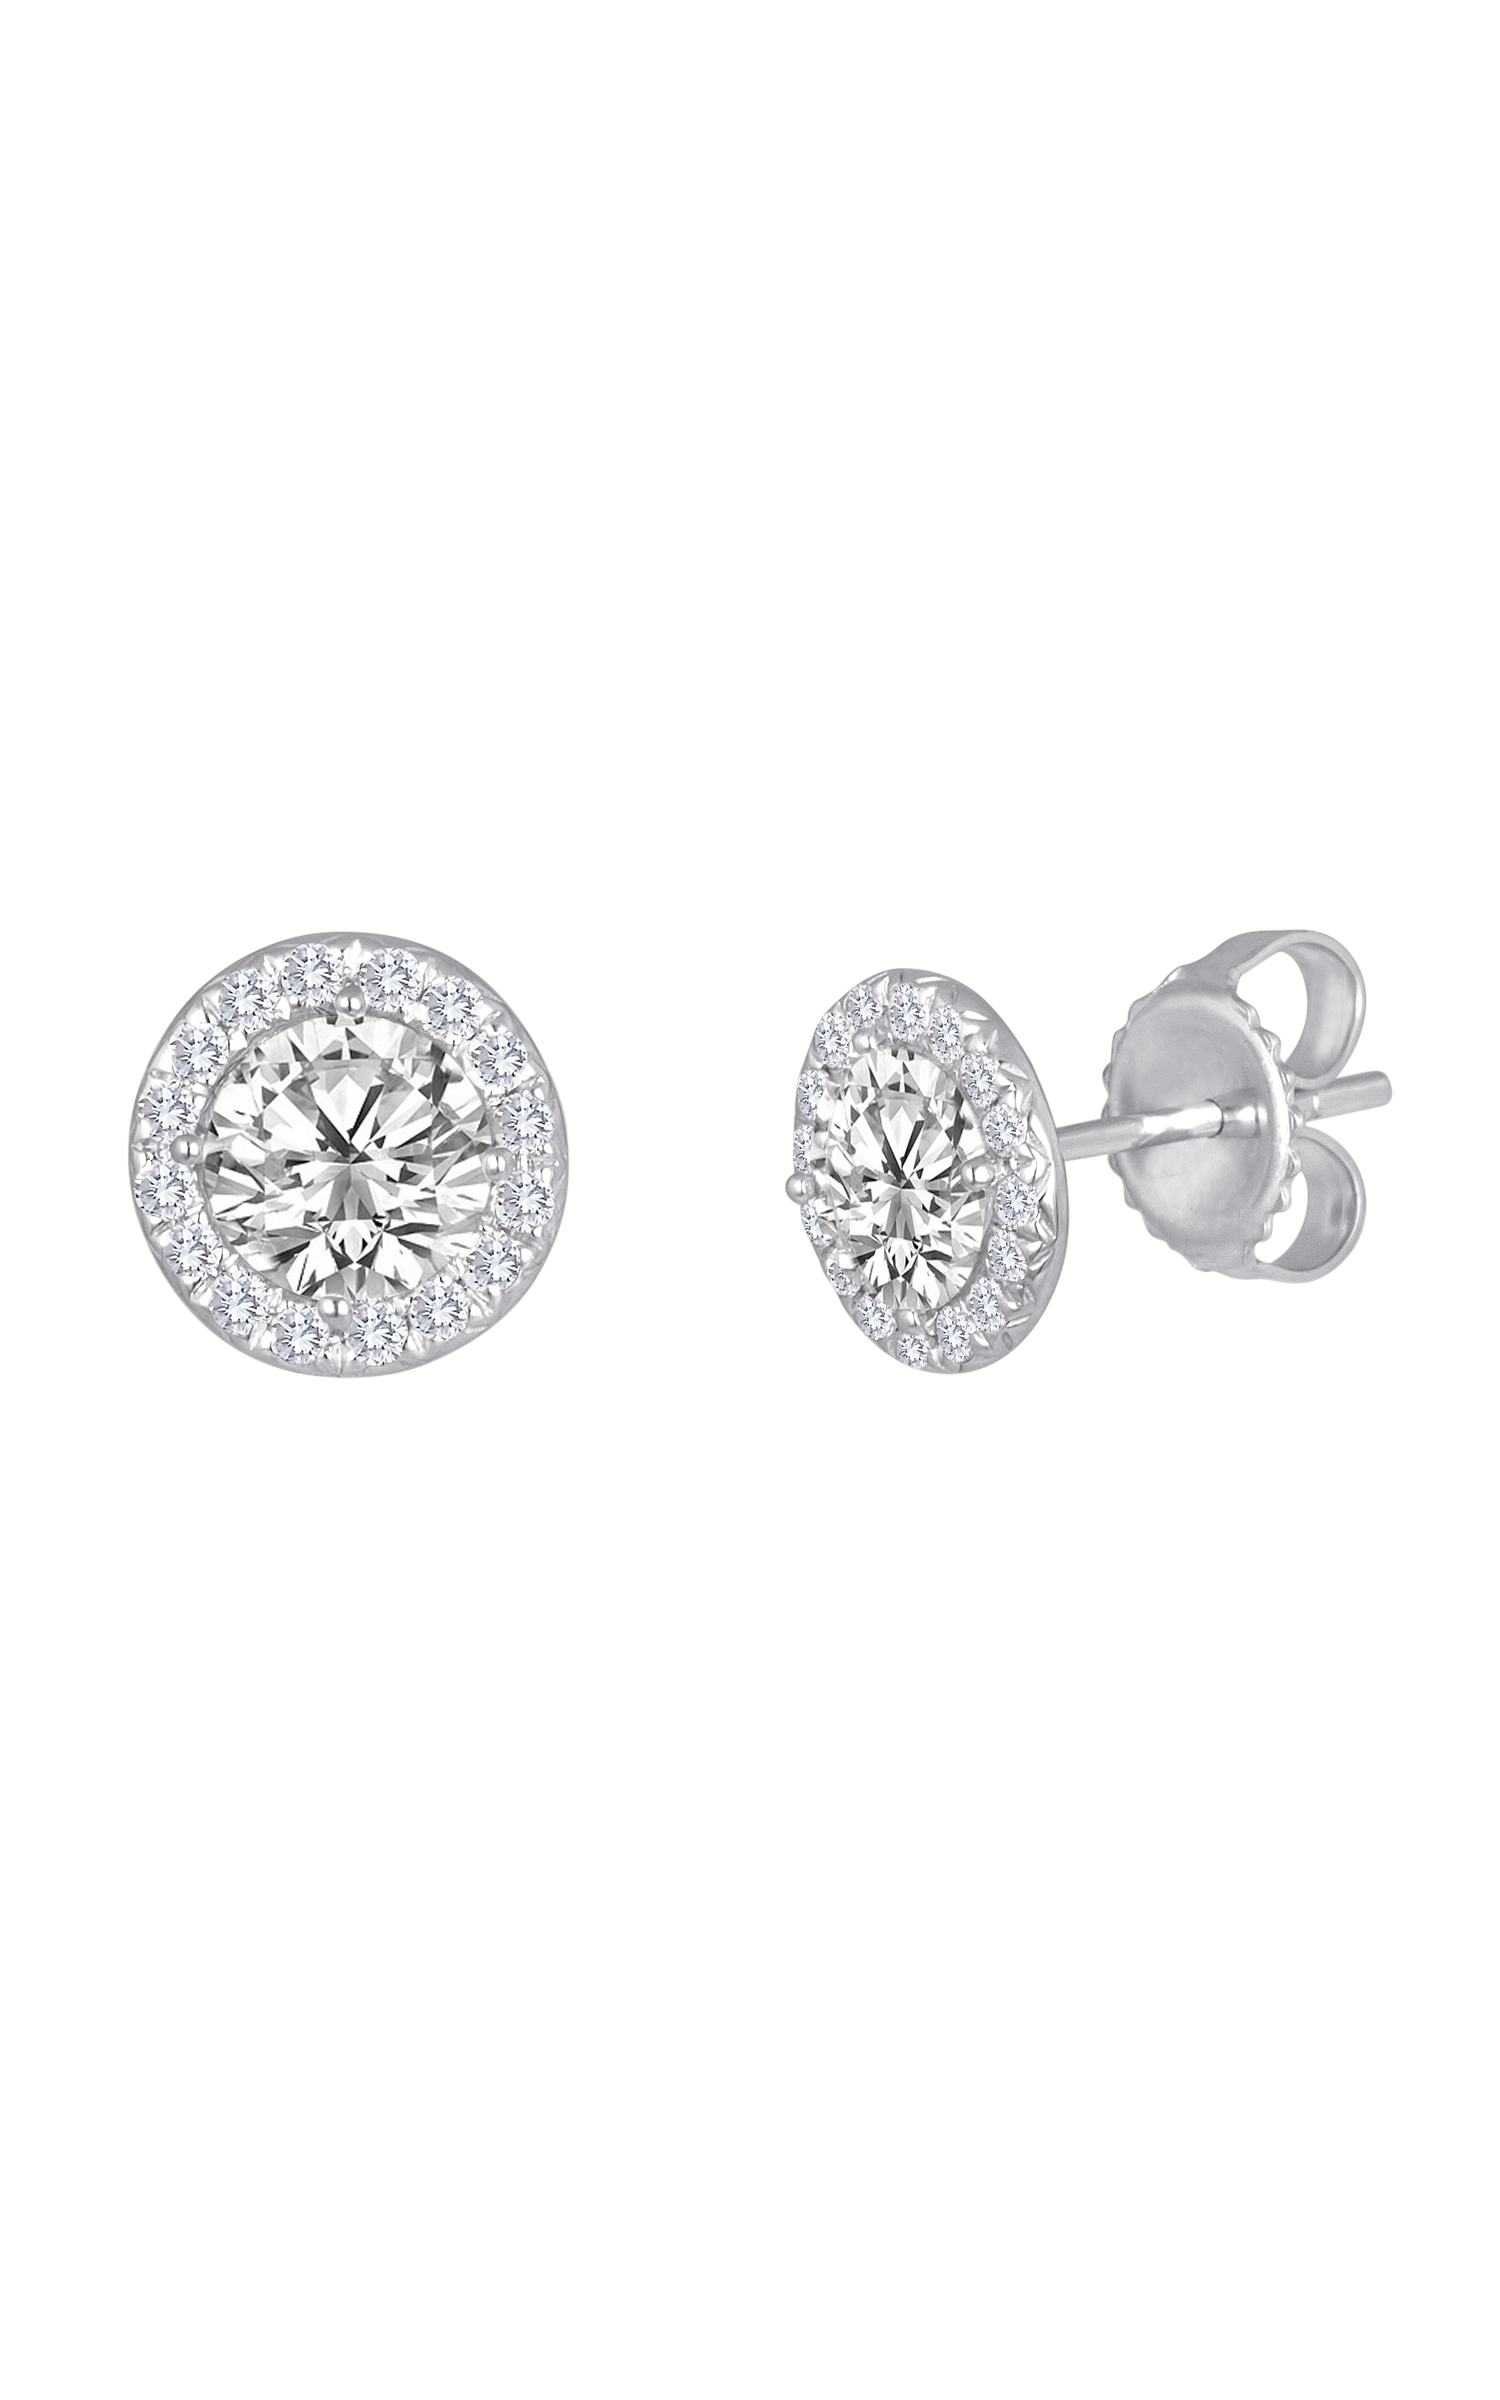 Beny Sofer Earrings SE12-146-2C product image